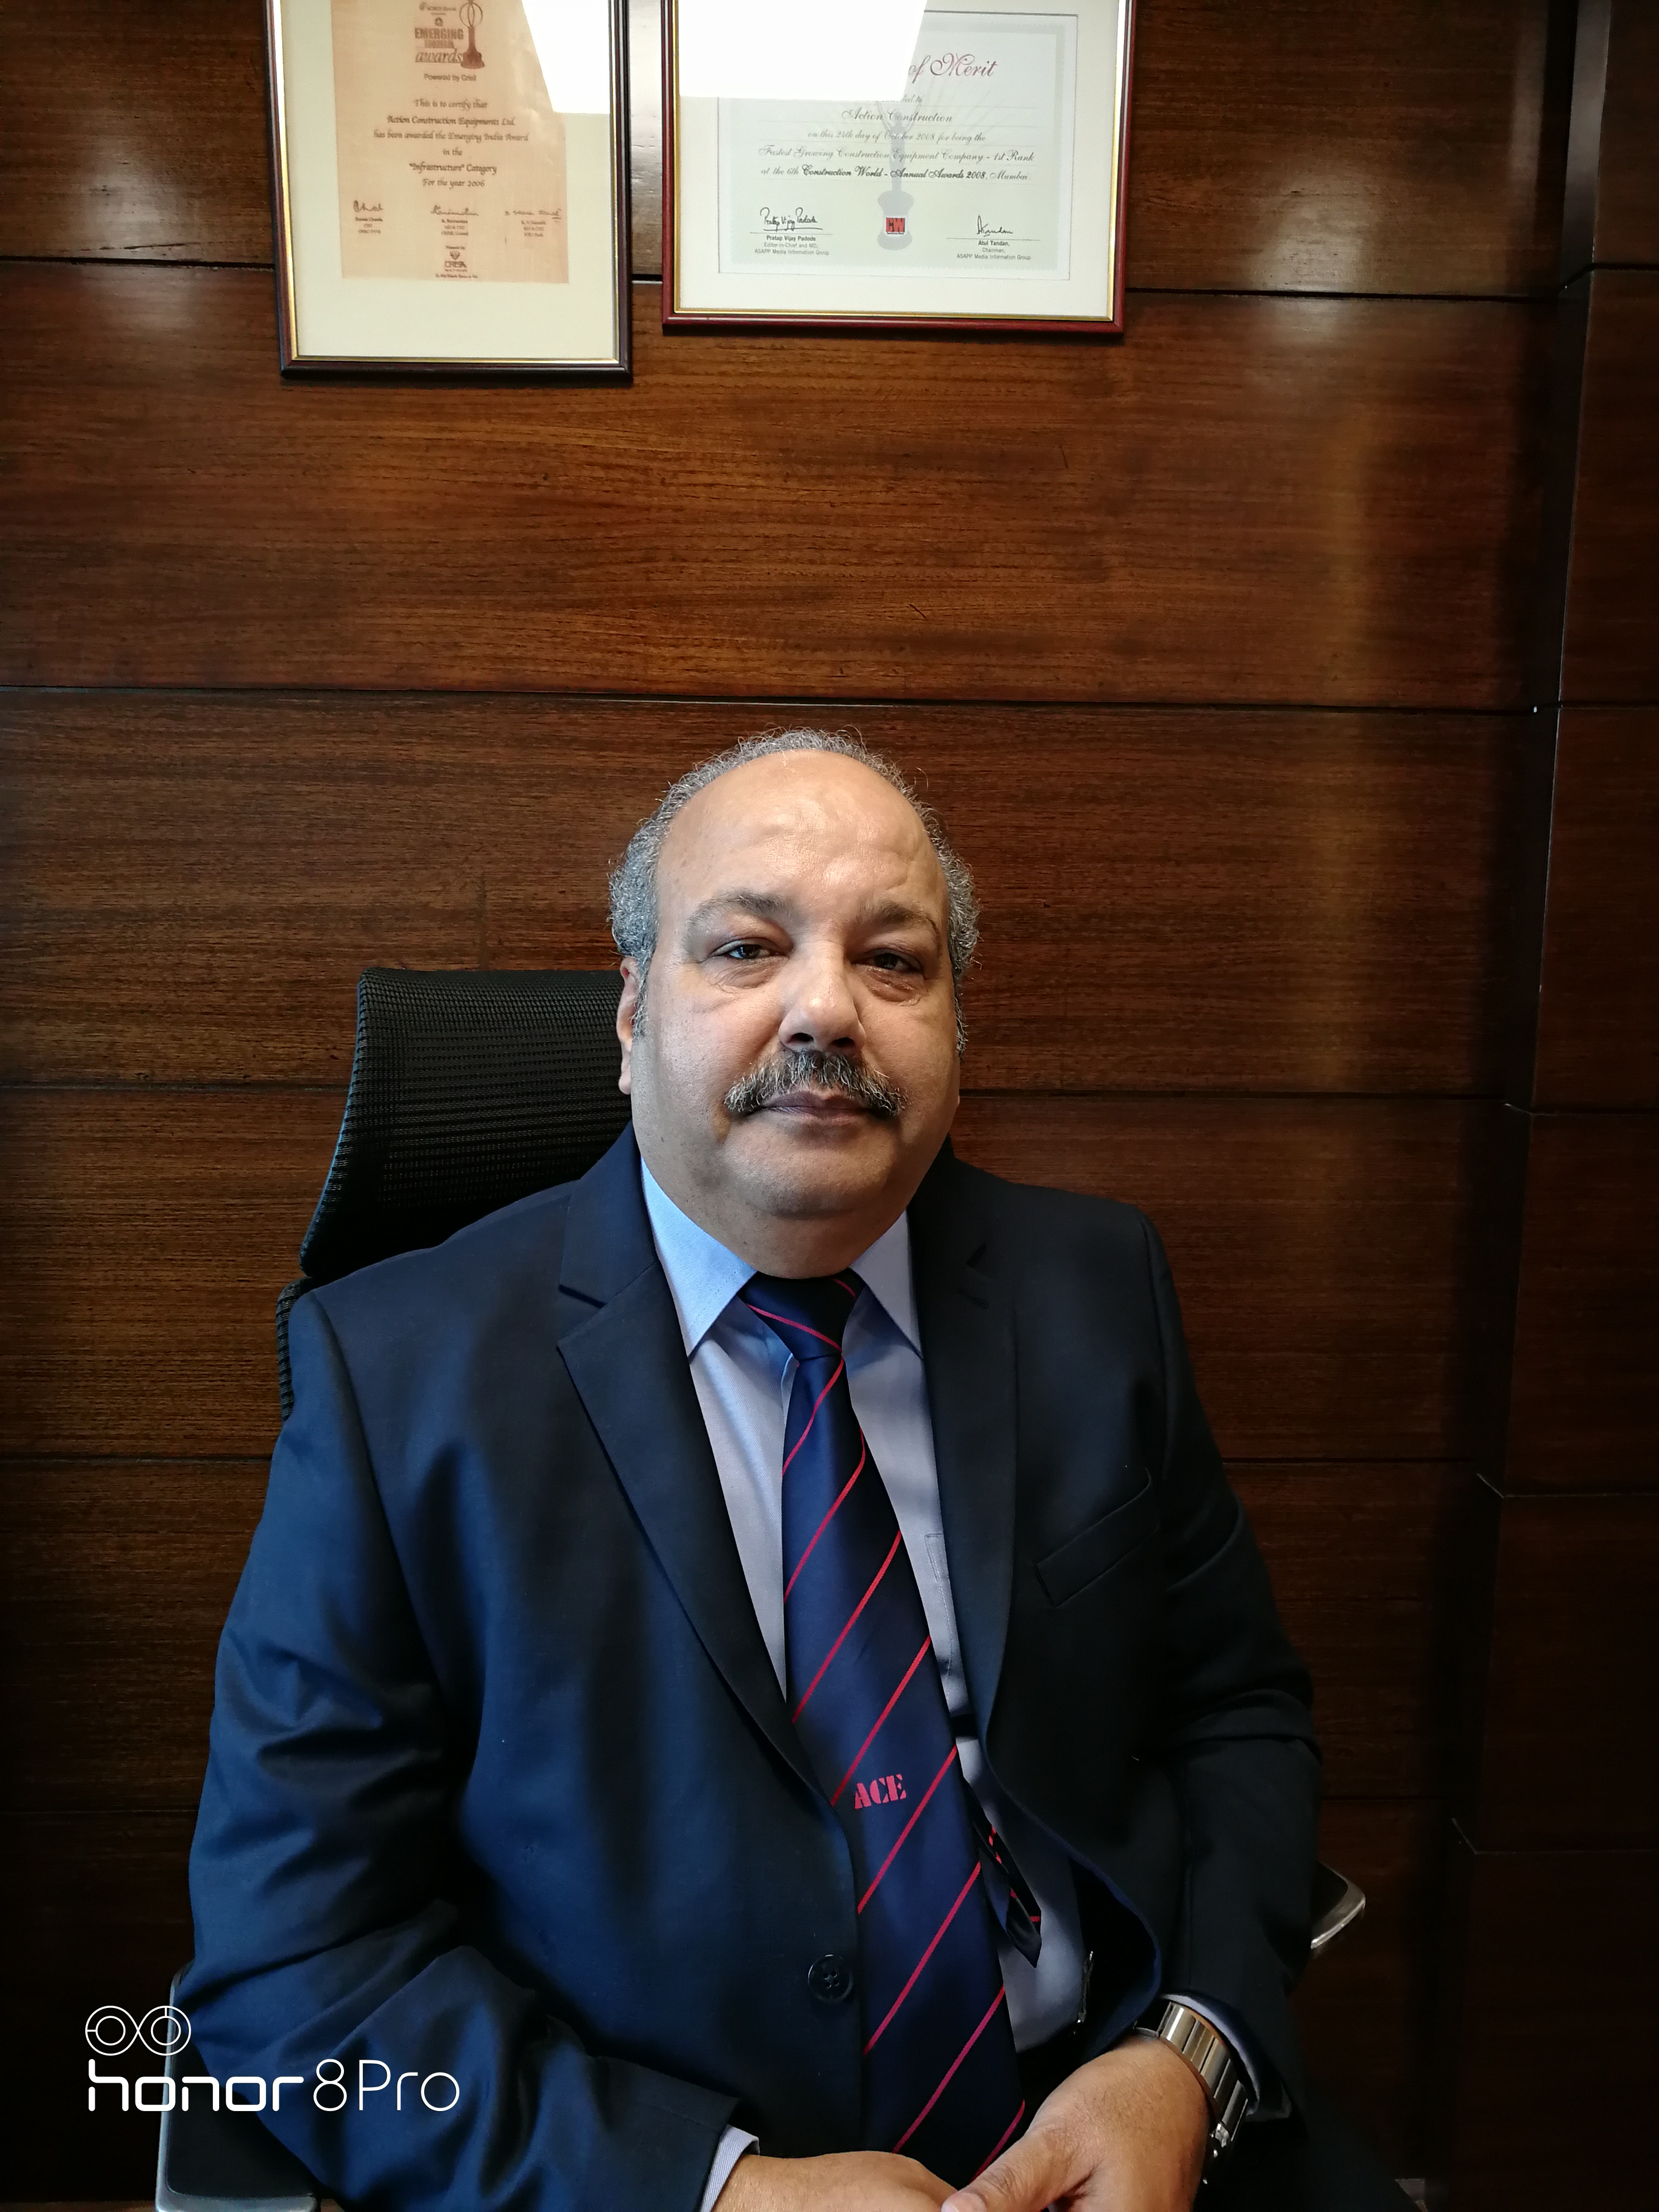 Pradeep Sharma, President of Action Construction Equipment (ACE), passed away on August 5, 2020.